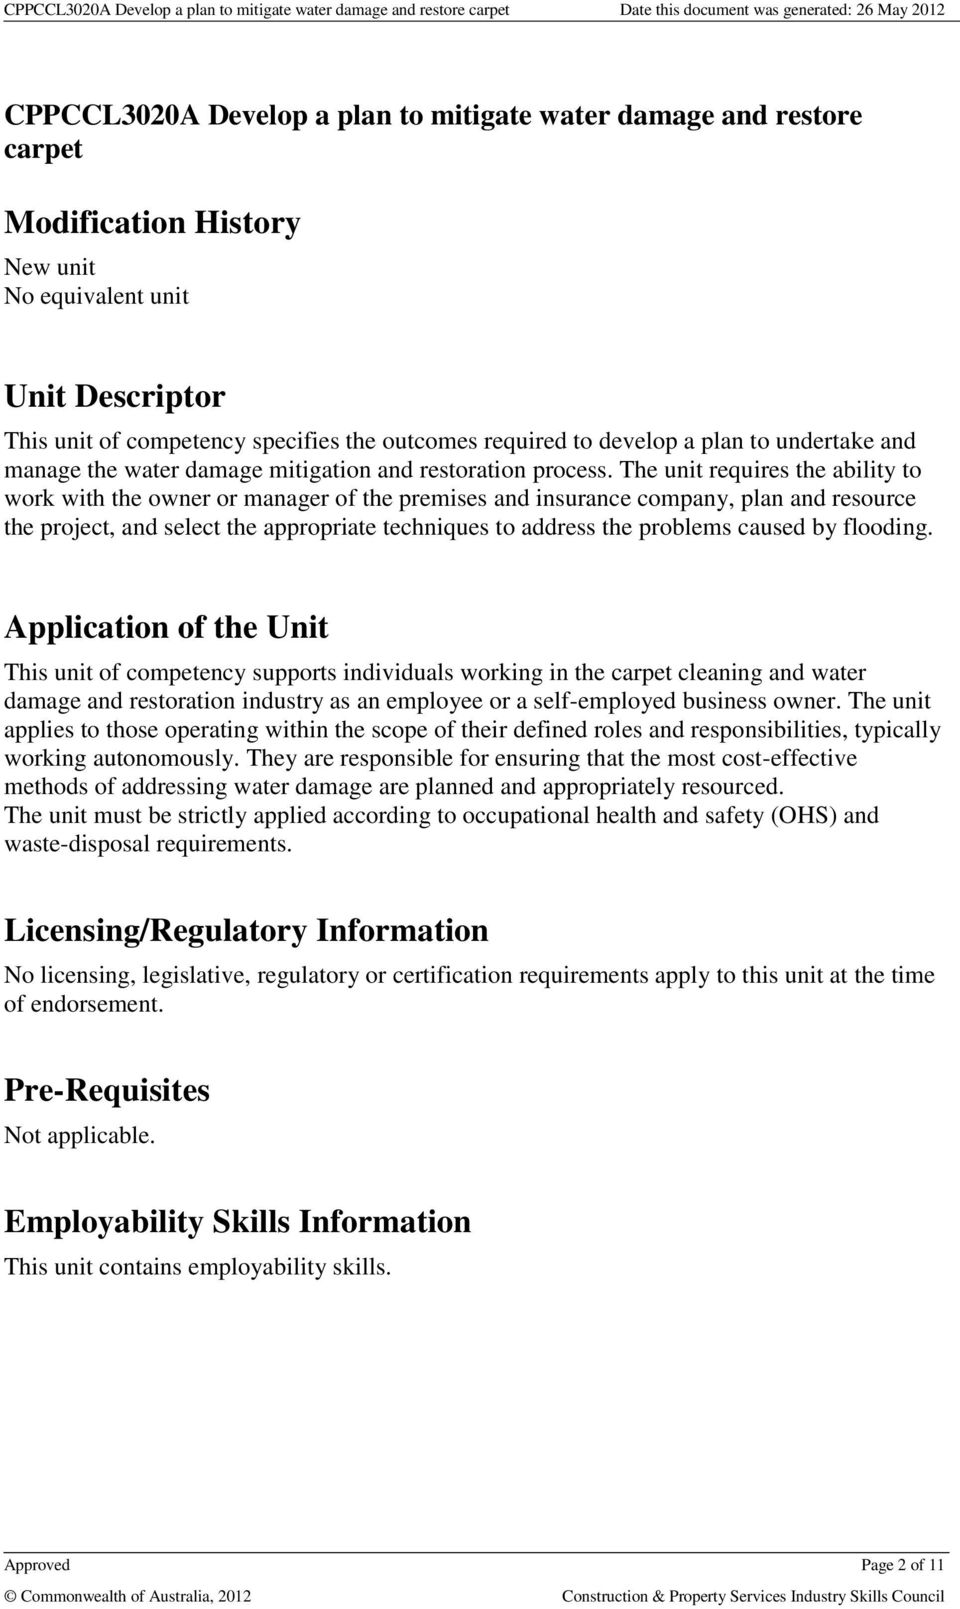 The unit requires the ability to work with the owner or manager of the premises and insurance company, plan and resource the project, and select the appropriate techniques to address the problems